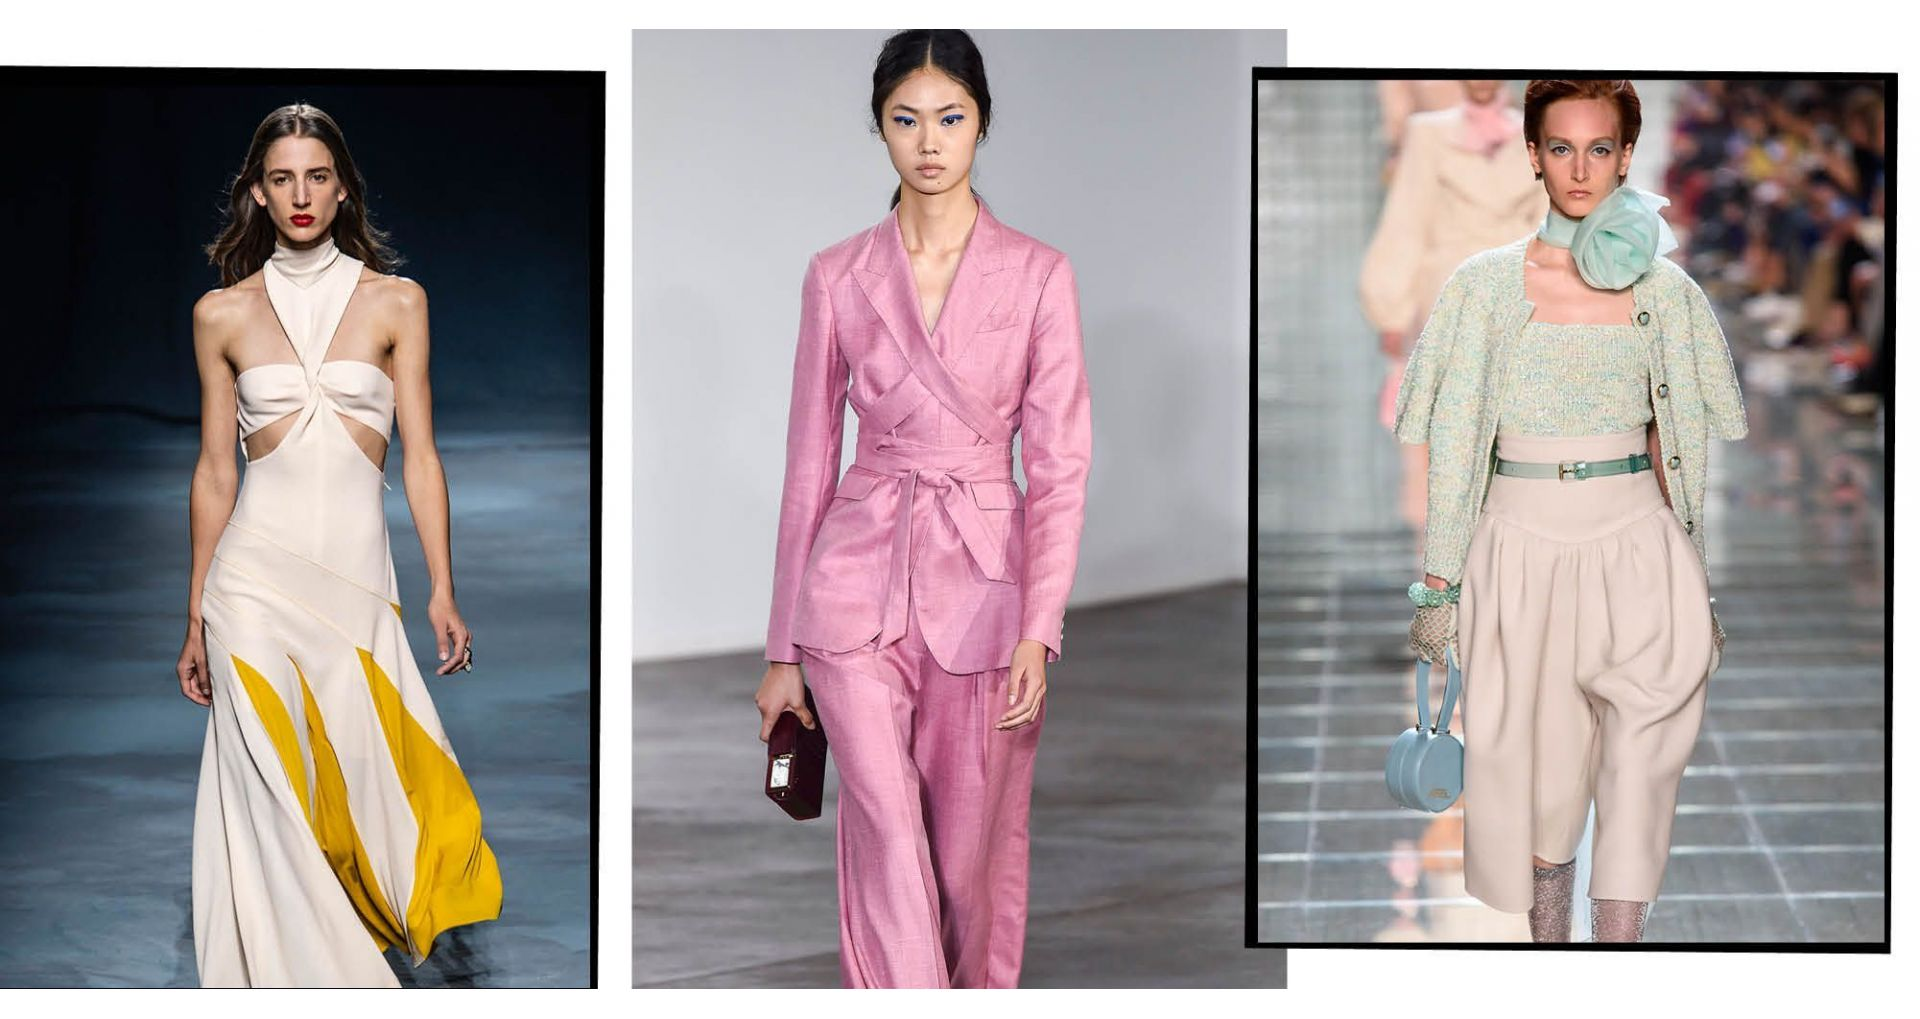 The latest clothing trends for women